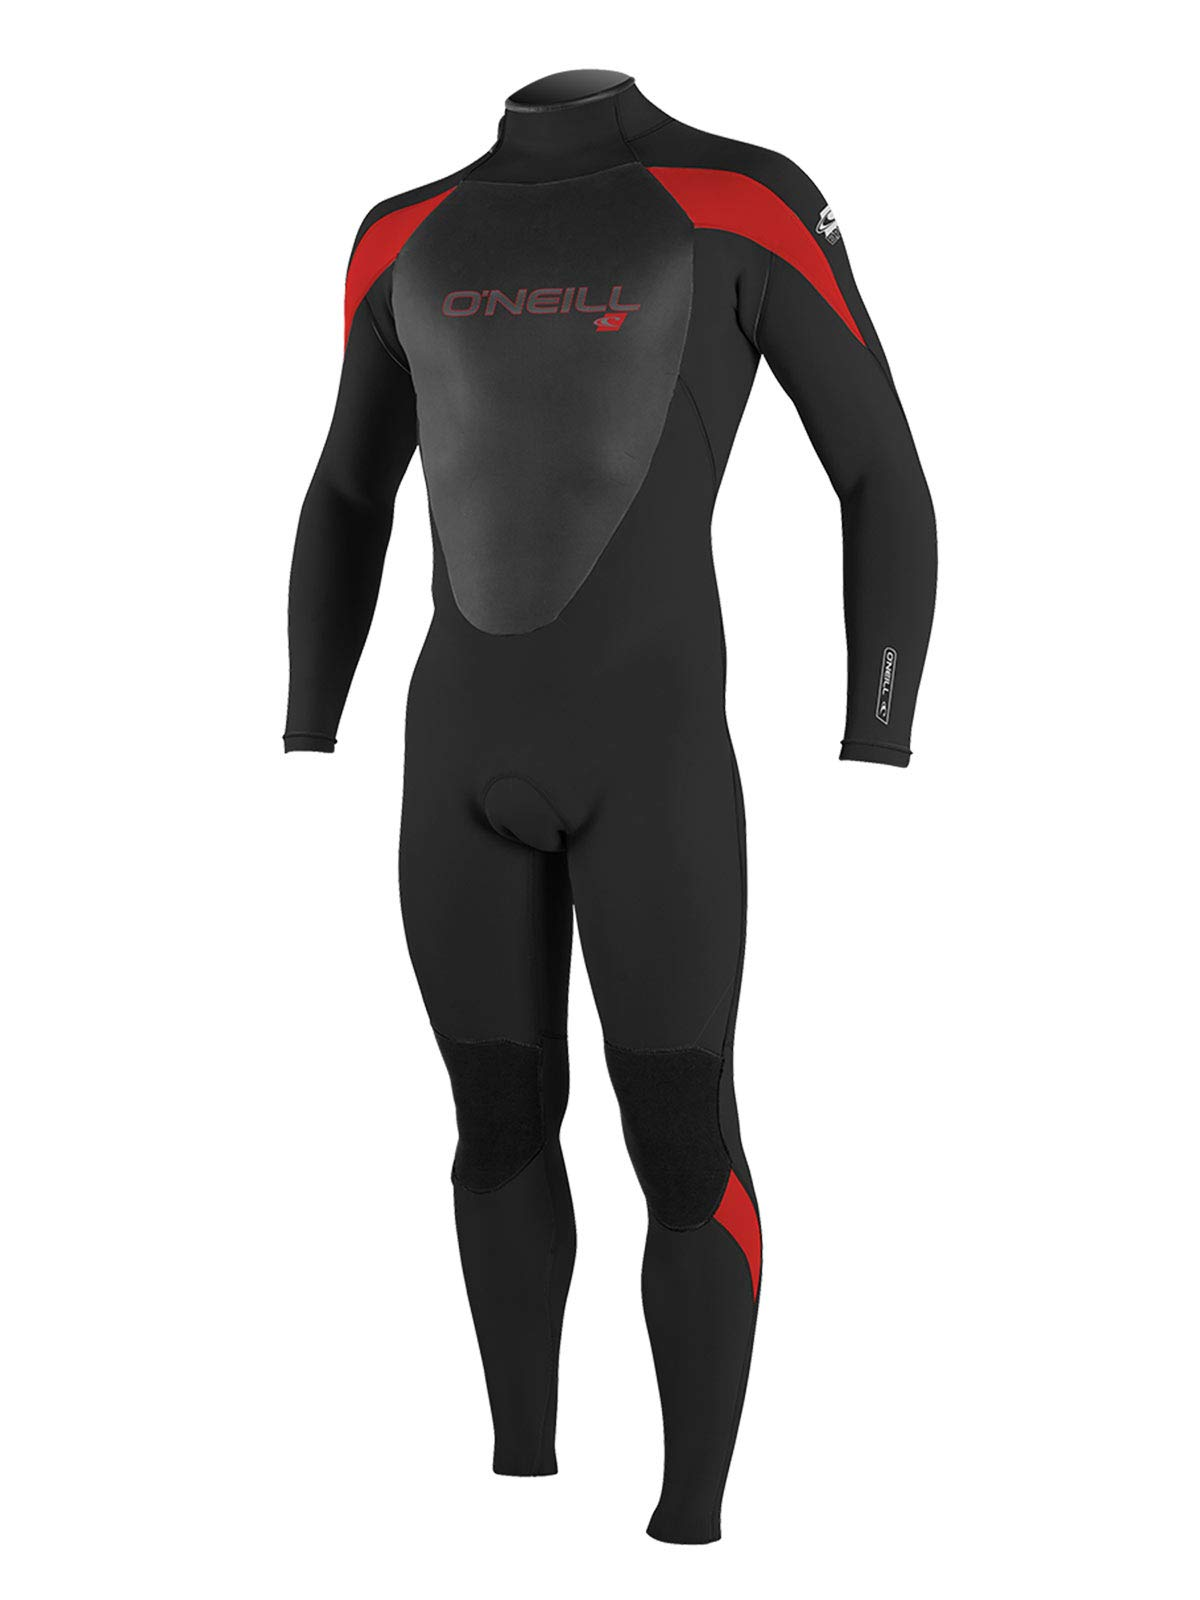 O'Neill Men's Epic 4/3mm Full Wetsuit (Black/Black/red, Medium)